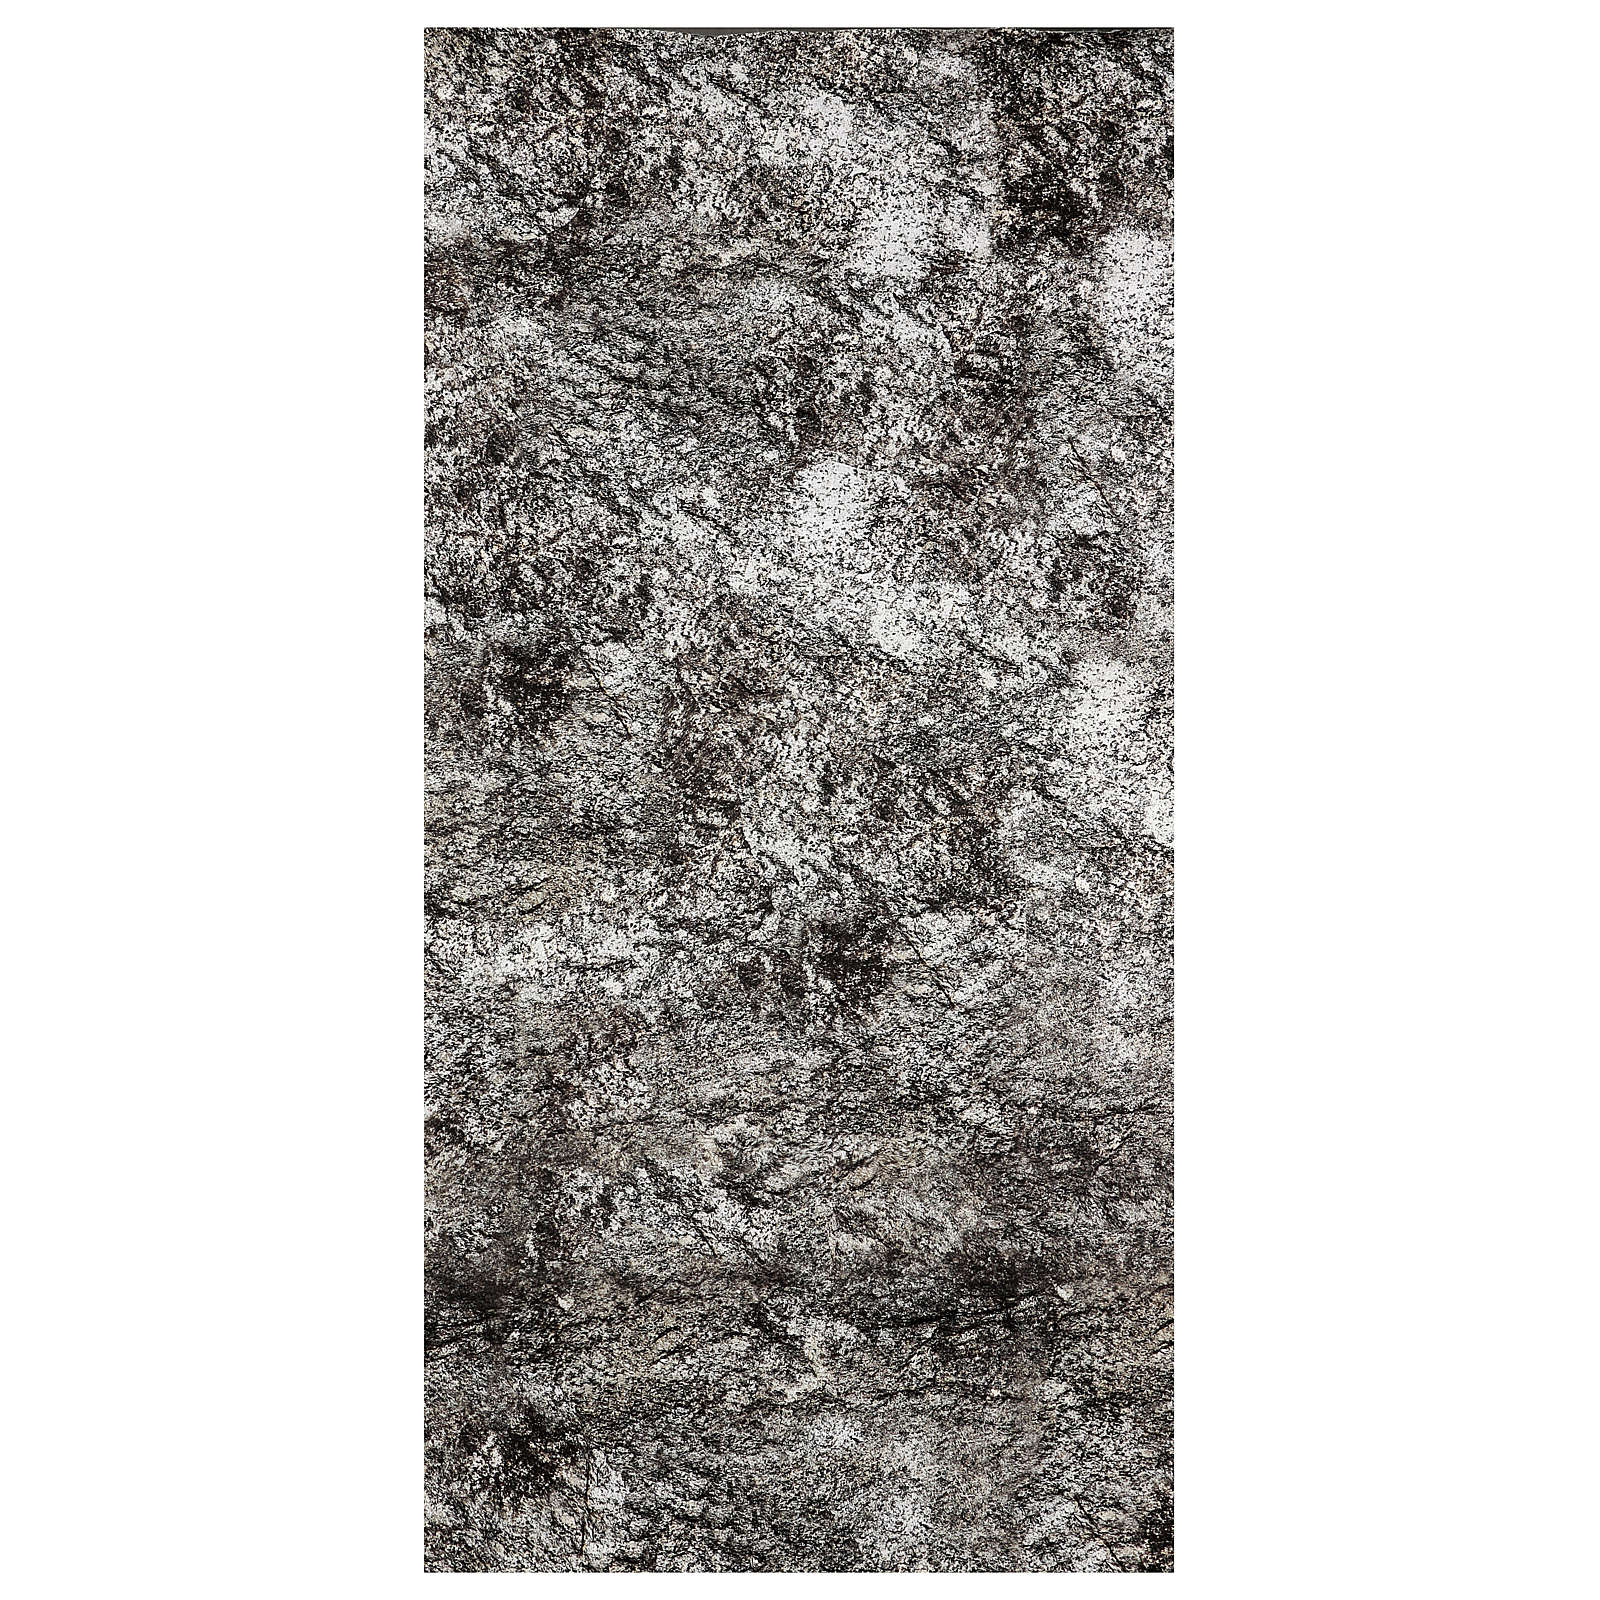 Nativity backdrop paper, snow covered rock 120x60 cm 4